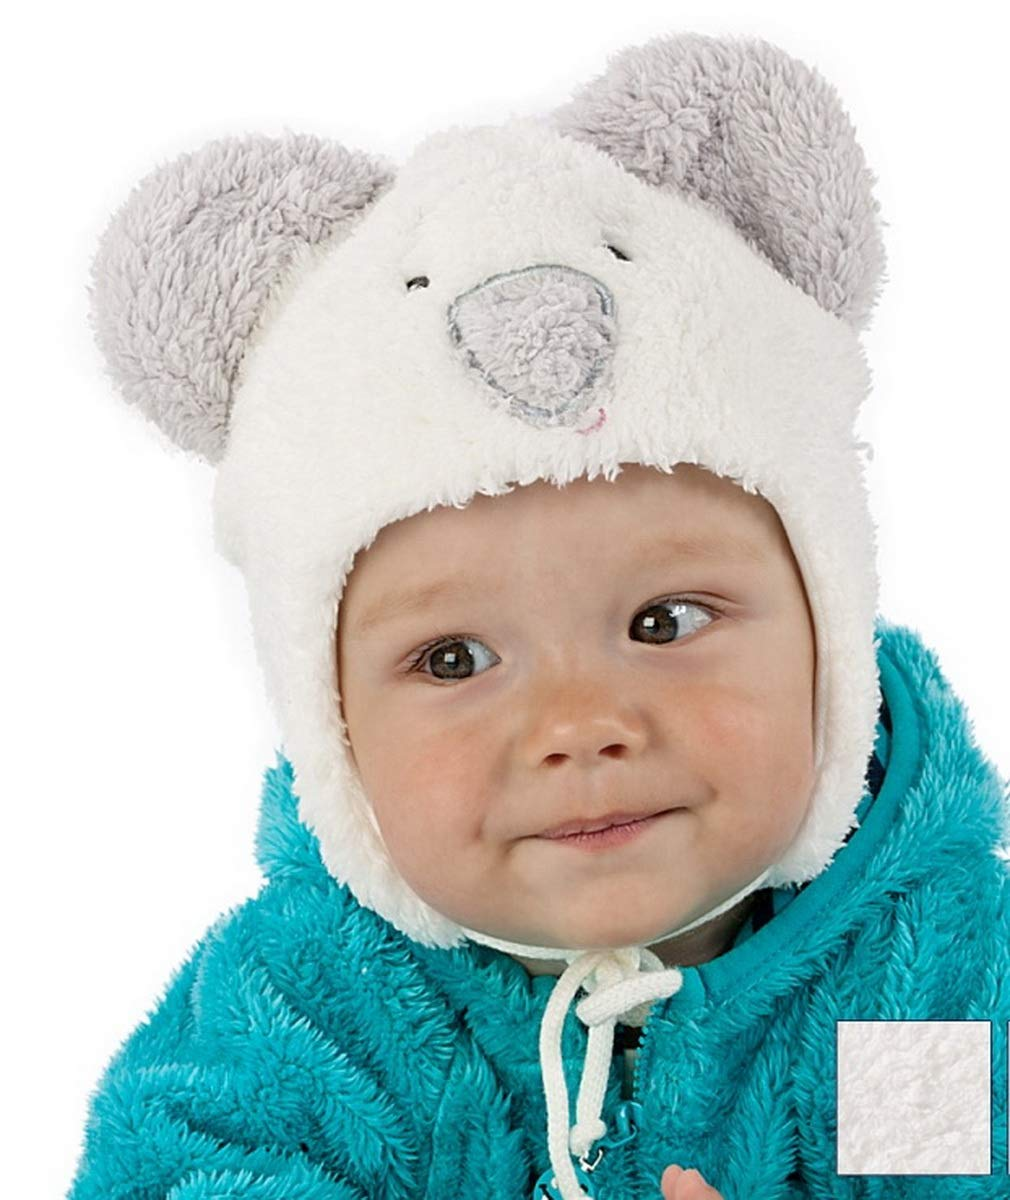 Baby Boy Boys Kids Autumn Winter Warm Cosy Hat 0-24 Months (44cm 6-9 Months, White/Grey) For Kids